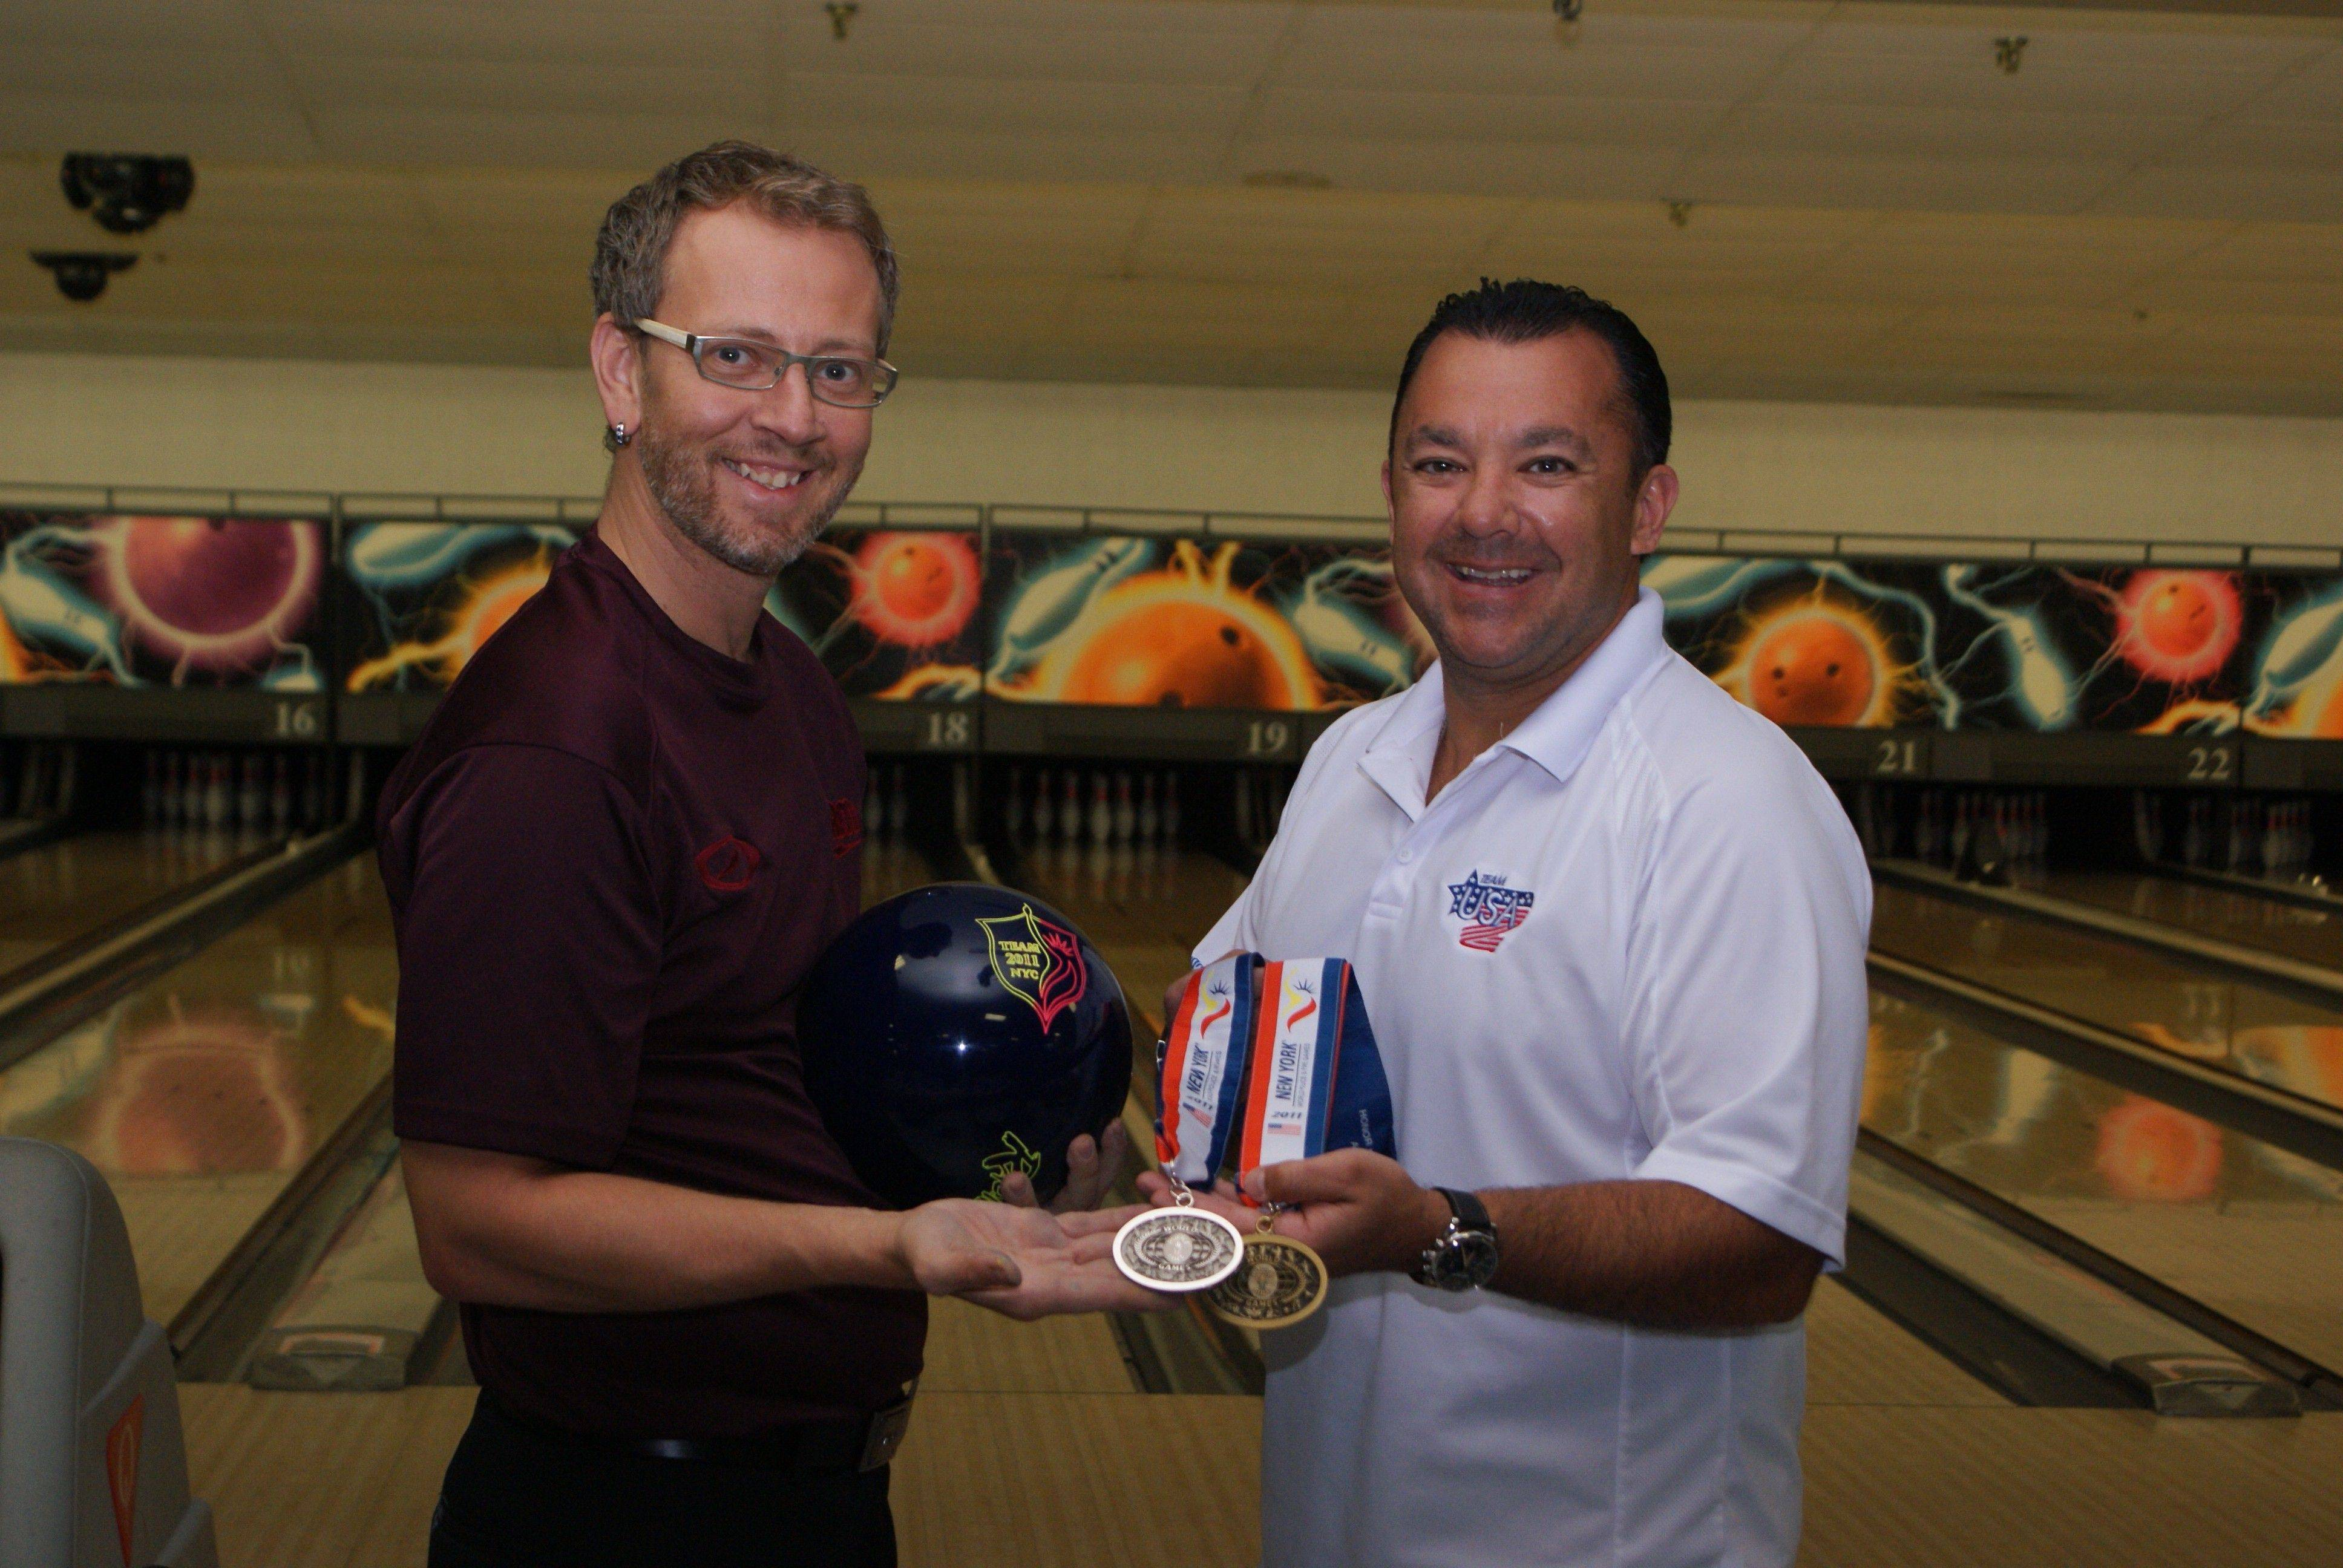 William Clark, left, owner of the pro shop at River Rand Bowl in Des Plaines, coached Dale Torii with the Rosemont Public Safety Department, who brought home silver and bronze medals for bowling at the World Police & Fire Games earlier this month in New York.